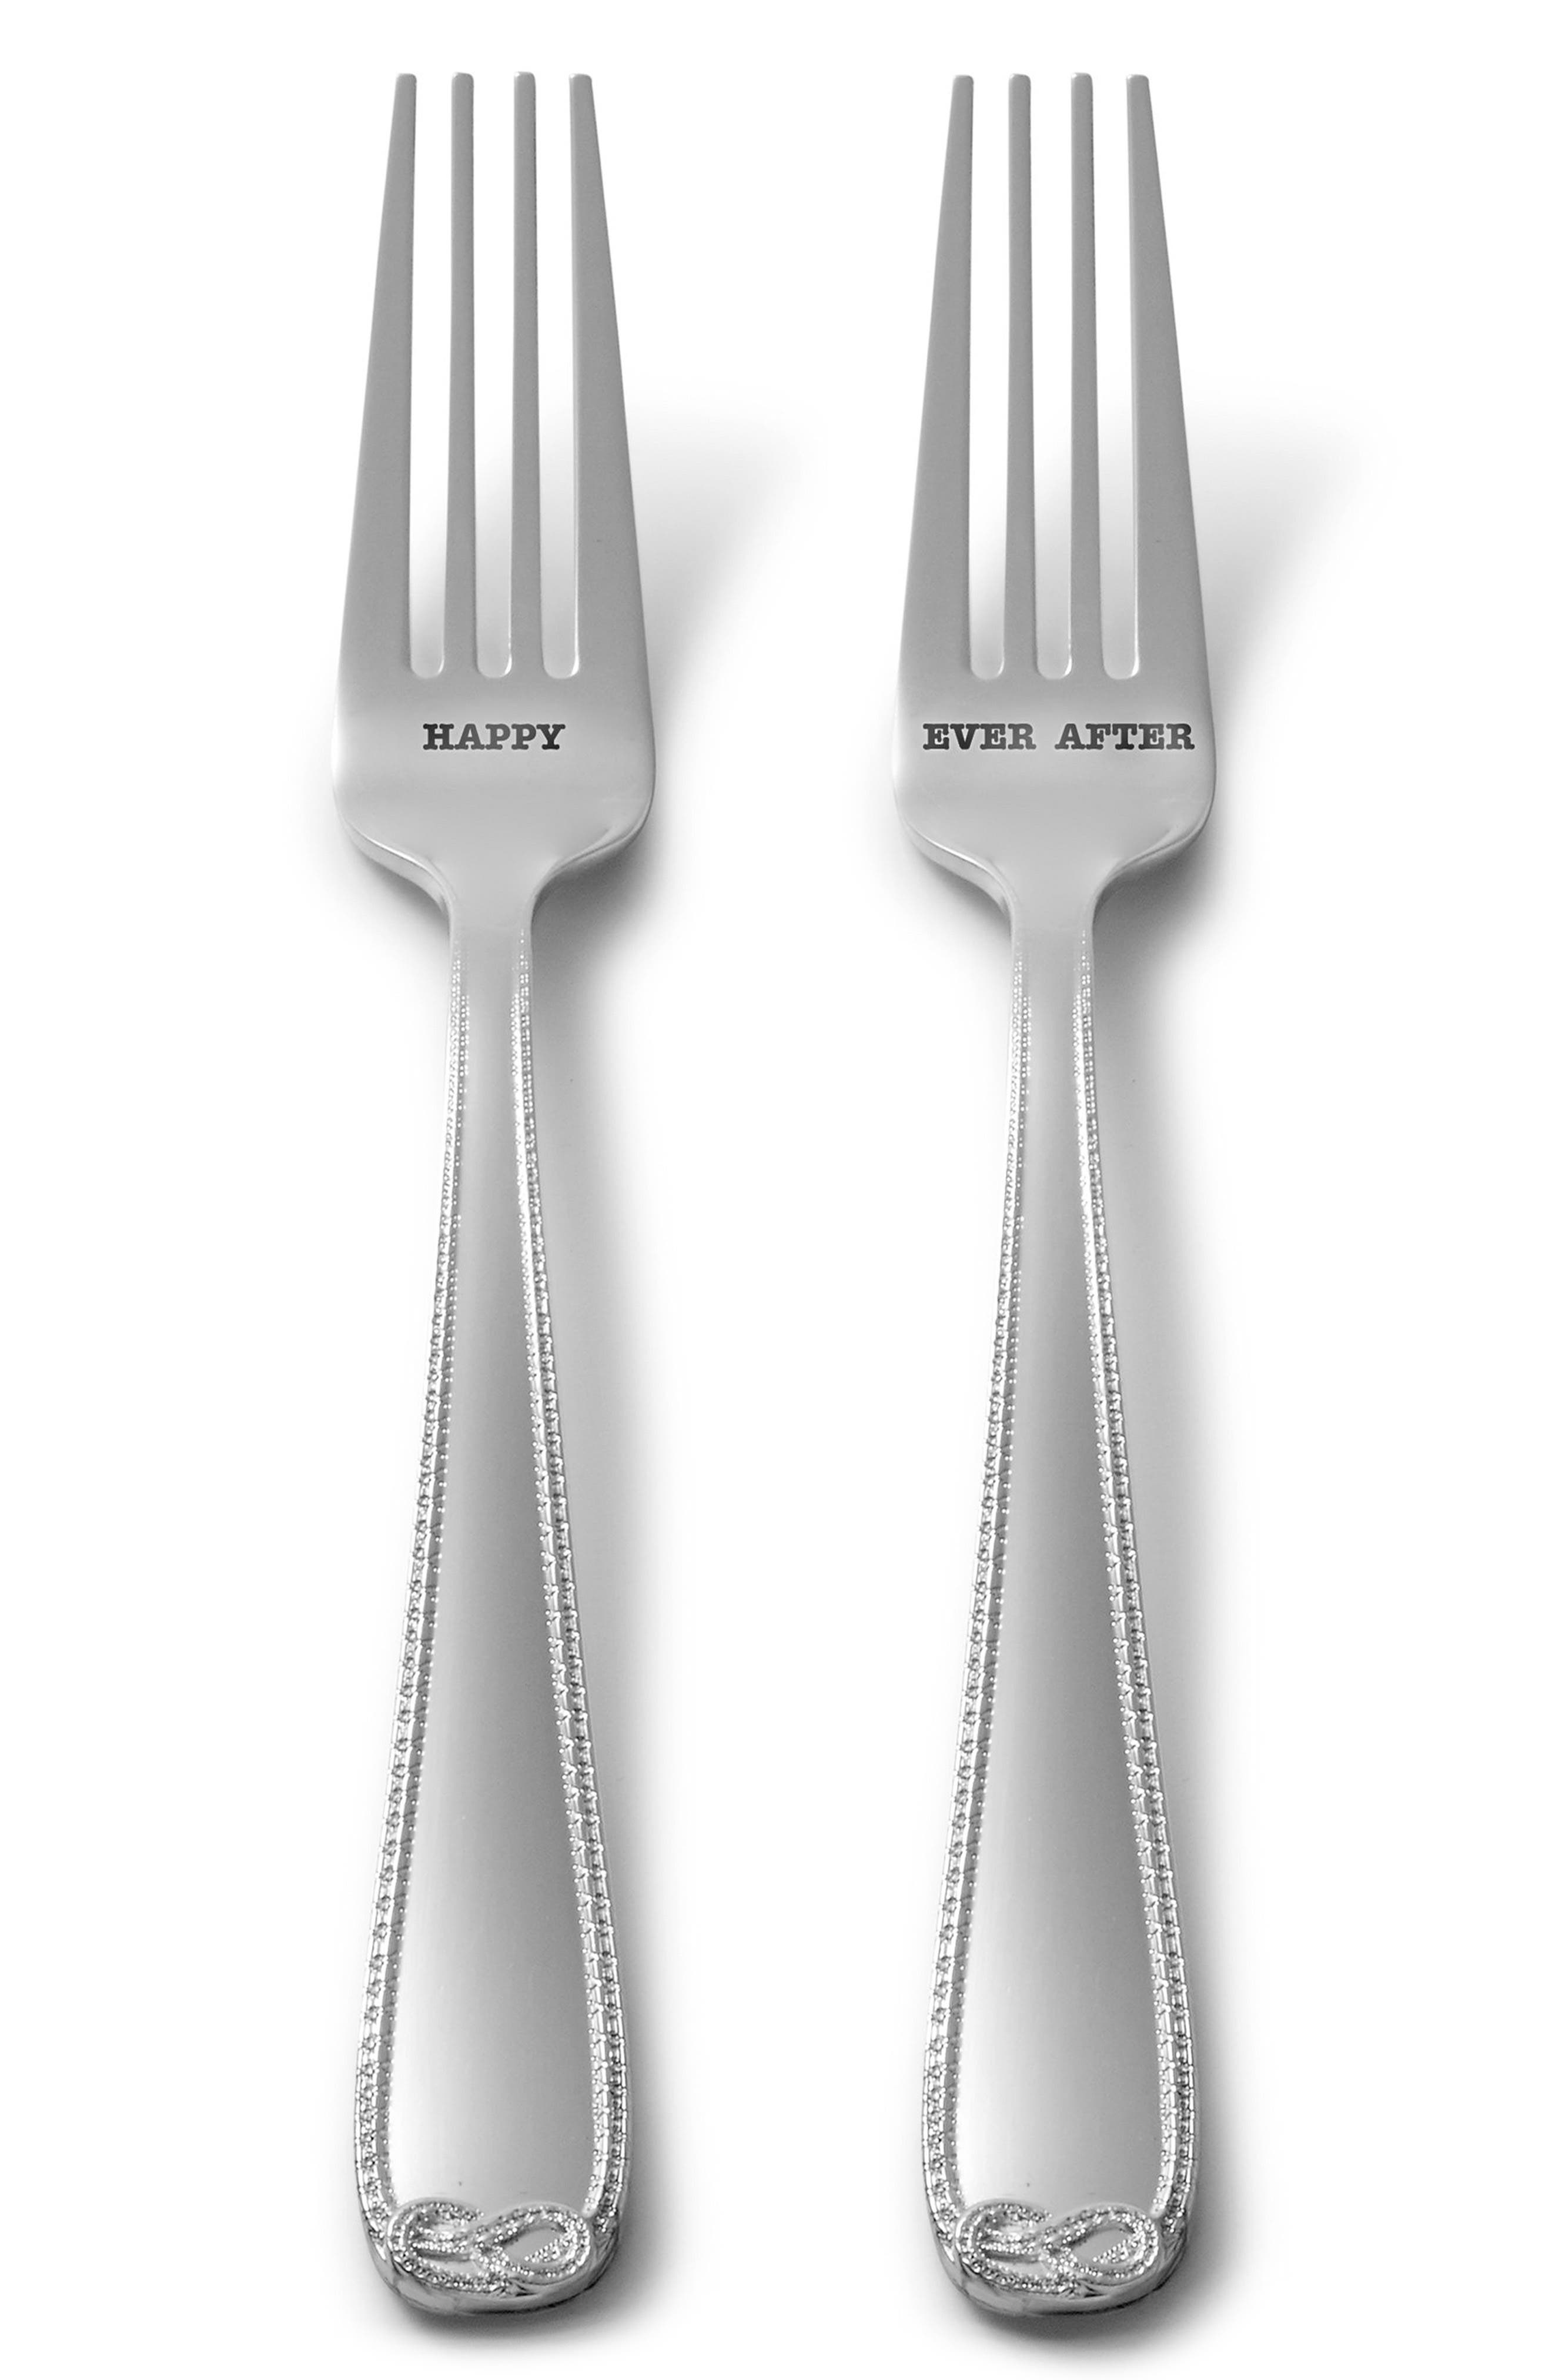 Alternate Image 1 Selected - Vera Wang x Wedgwood Infinity Happy Ever After Set of 2 Silver Plated Forks